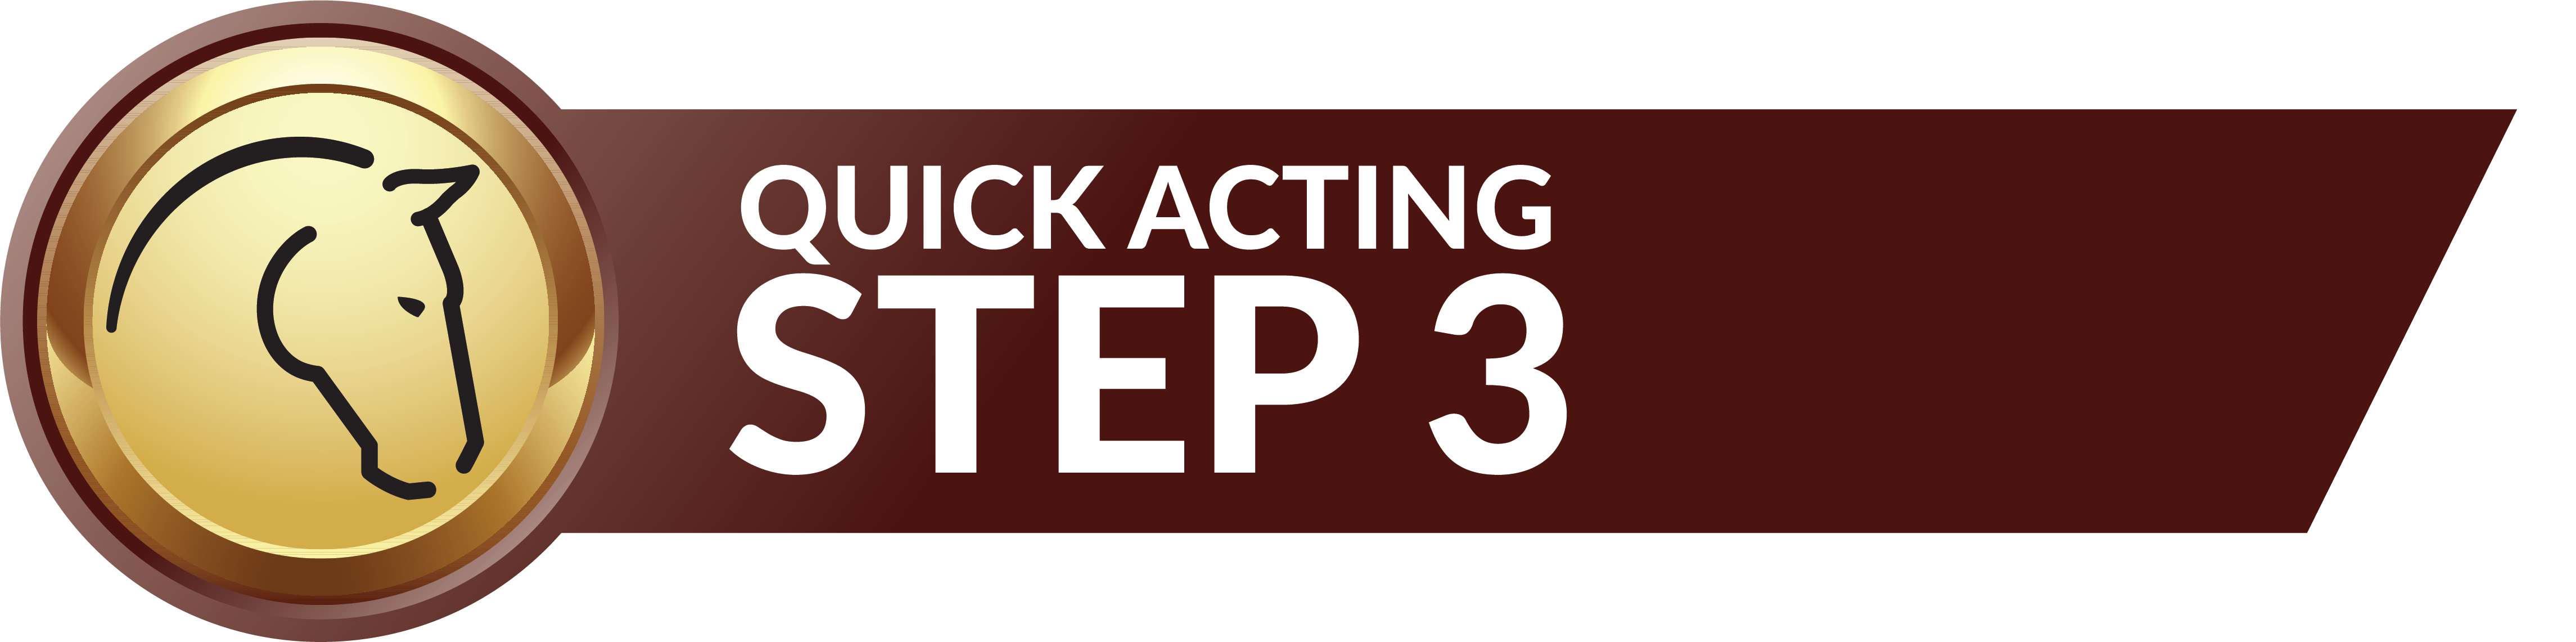 Step 3 Calming System